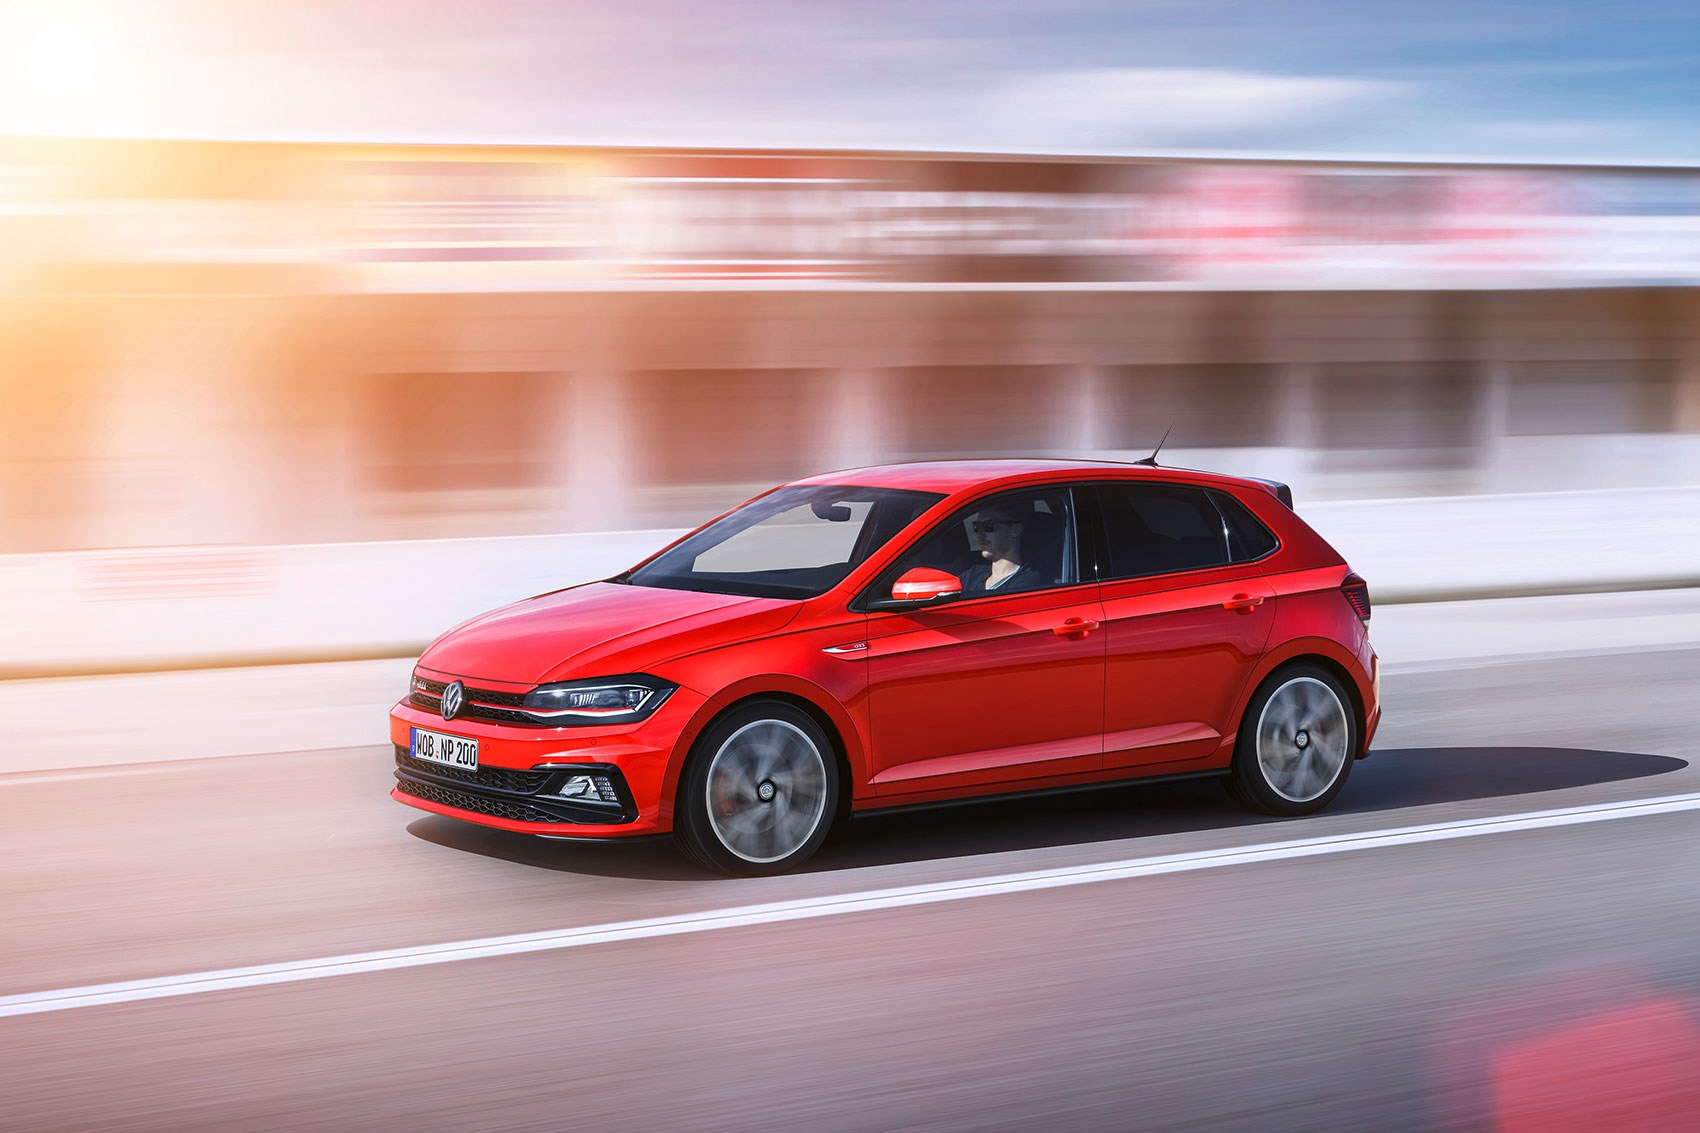 2018 volkswagen polo price.  polo vw polo prices expected to start at around 12000 in the uk on 2018 volkswagen polo price o